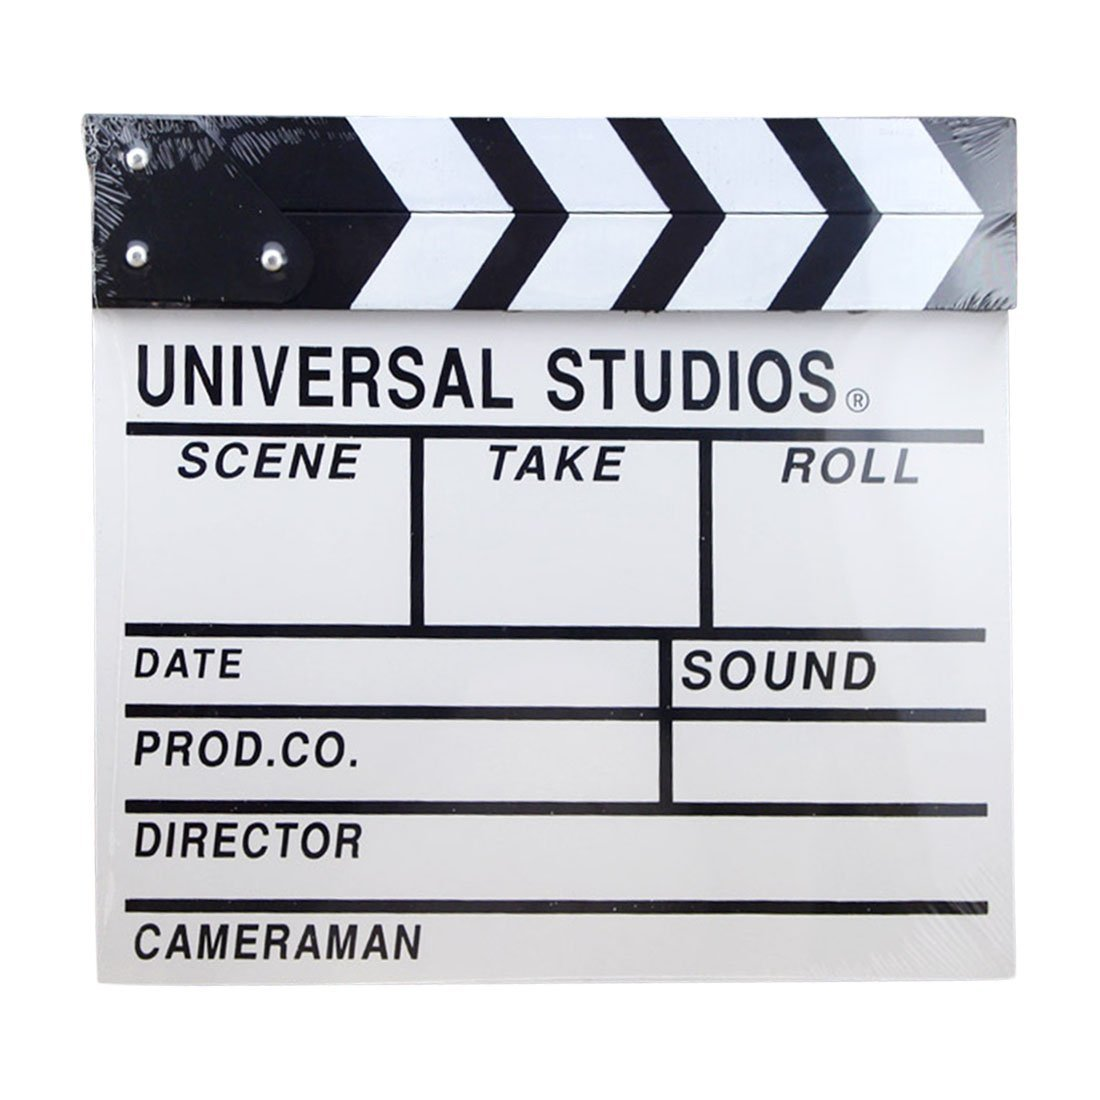 "Clapboard, Yamix Wooden Director Film Clapboard Director Film Movie Cut Action Scene Slate Board Clapper Board Slate 12.2"" X 11"